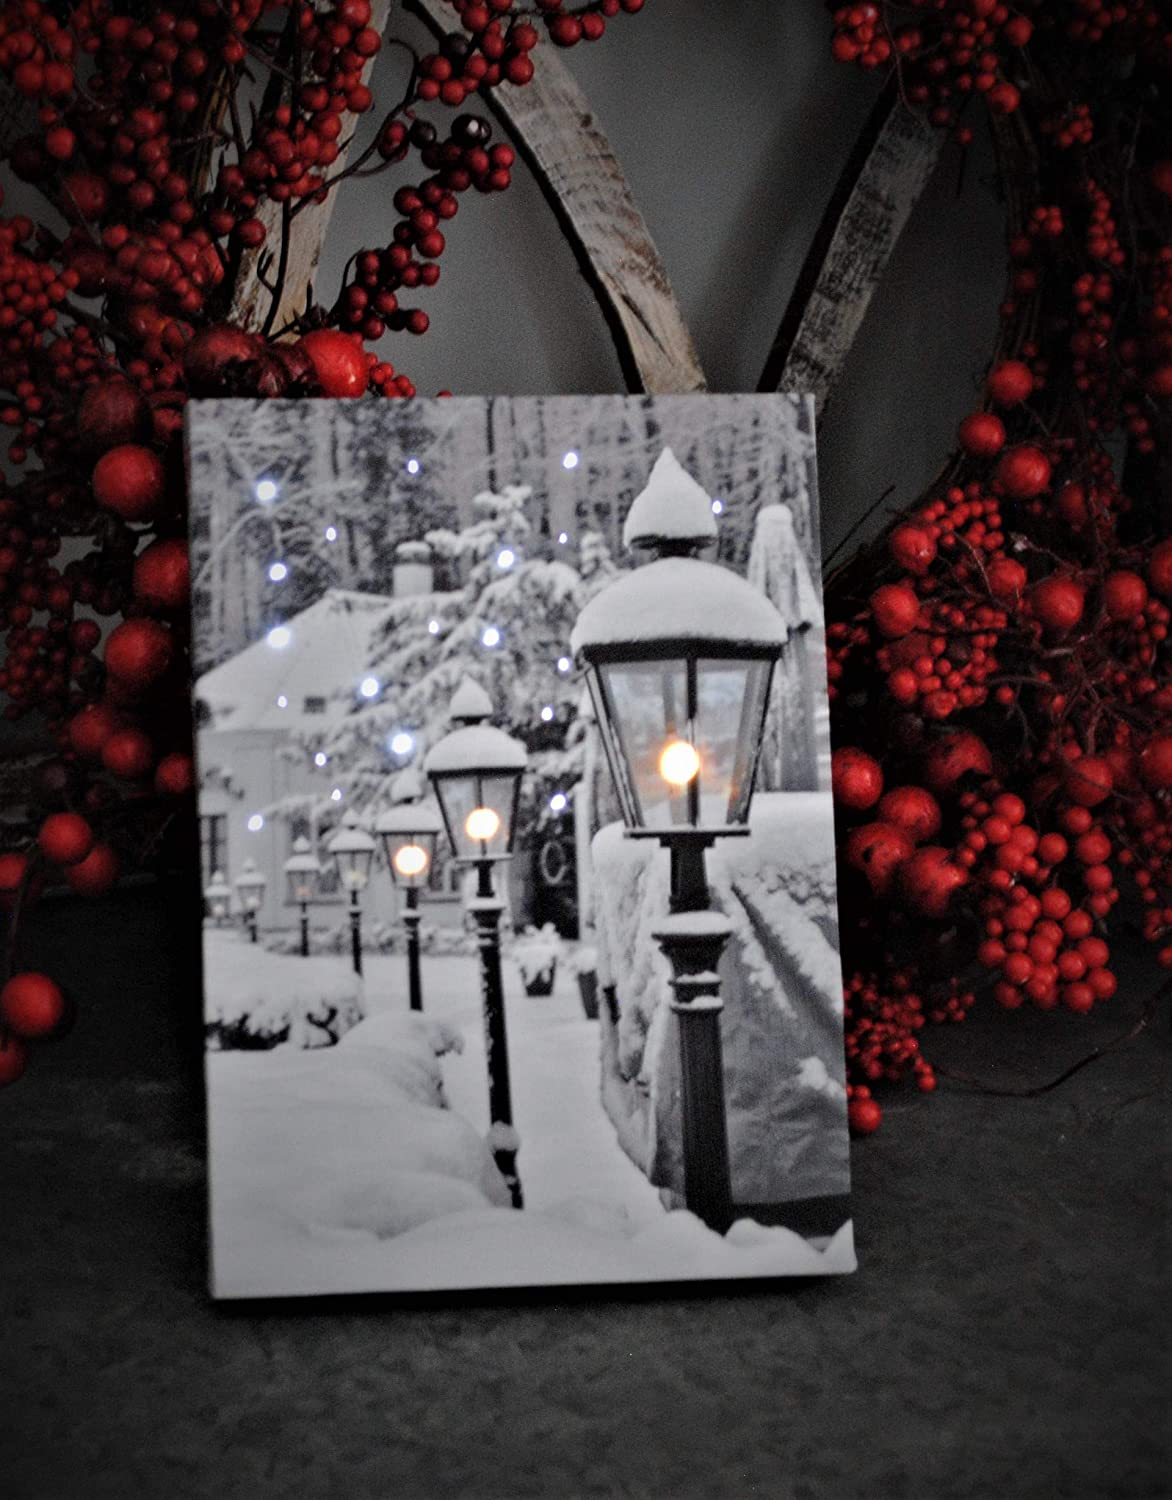 The White Azalea Tabletop Lighted Picture Winter Scene with Lamp Posts Canvas Print Stretched Over Wood Frame with Built in Stand and Timmer Function LED Lights